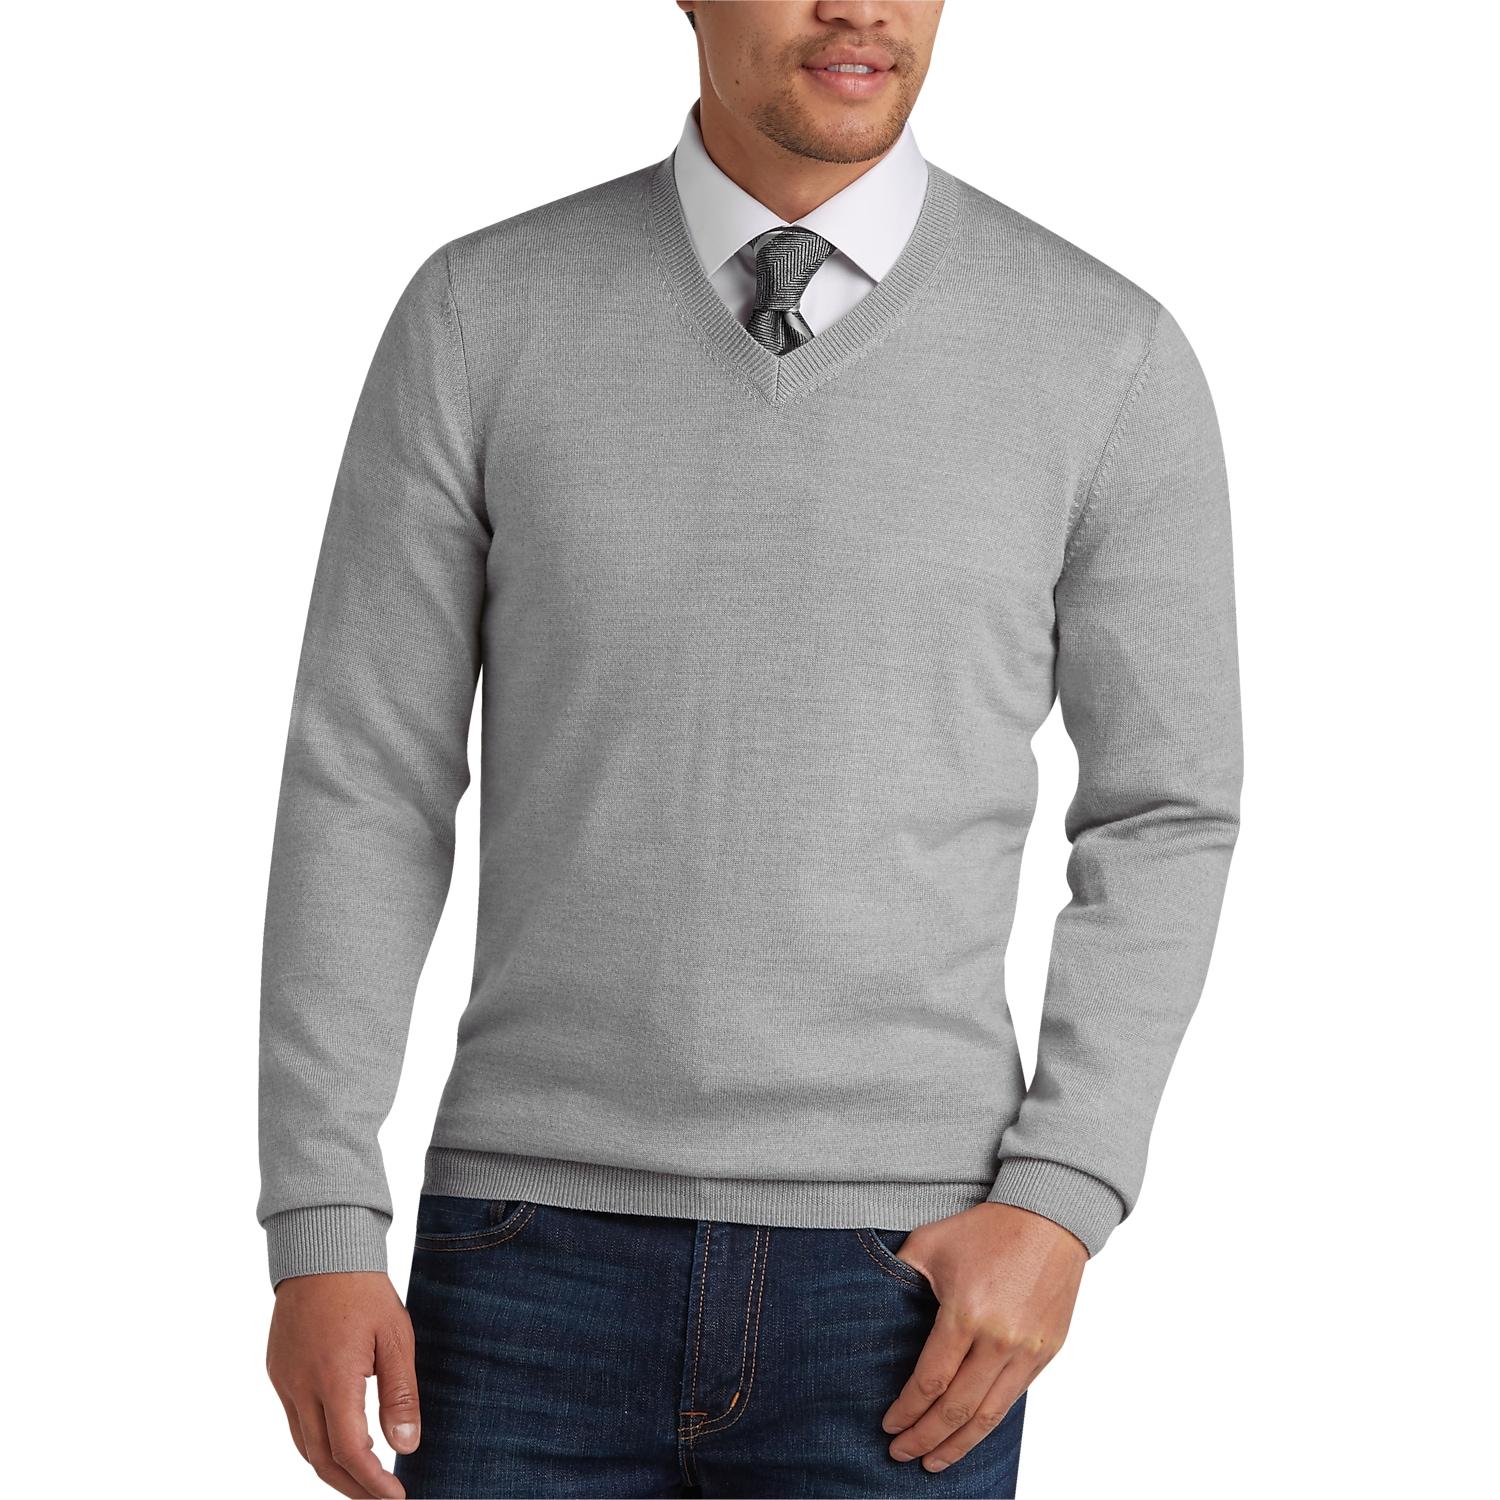 1af1c2630ca2 Men's Big & Tall Sweaters - Cashmere, Turtlenecks in XL | Men's ...